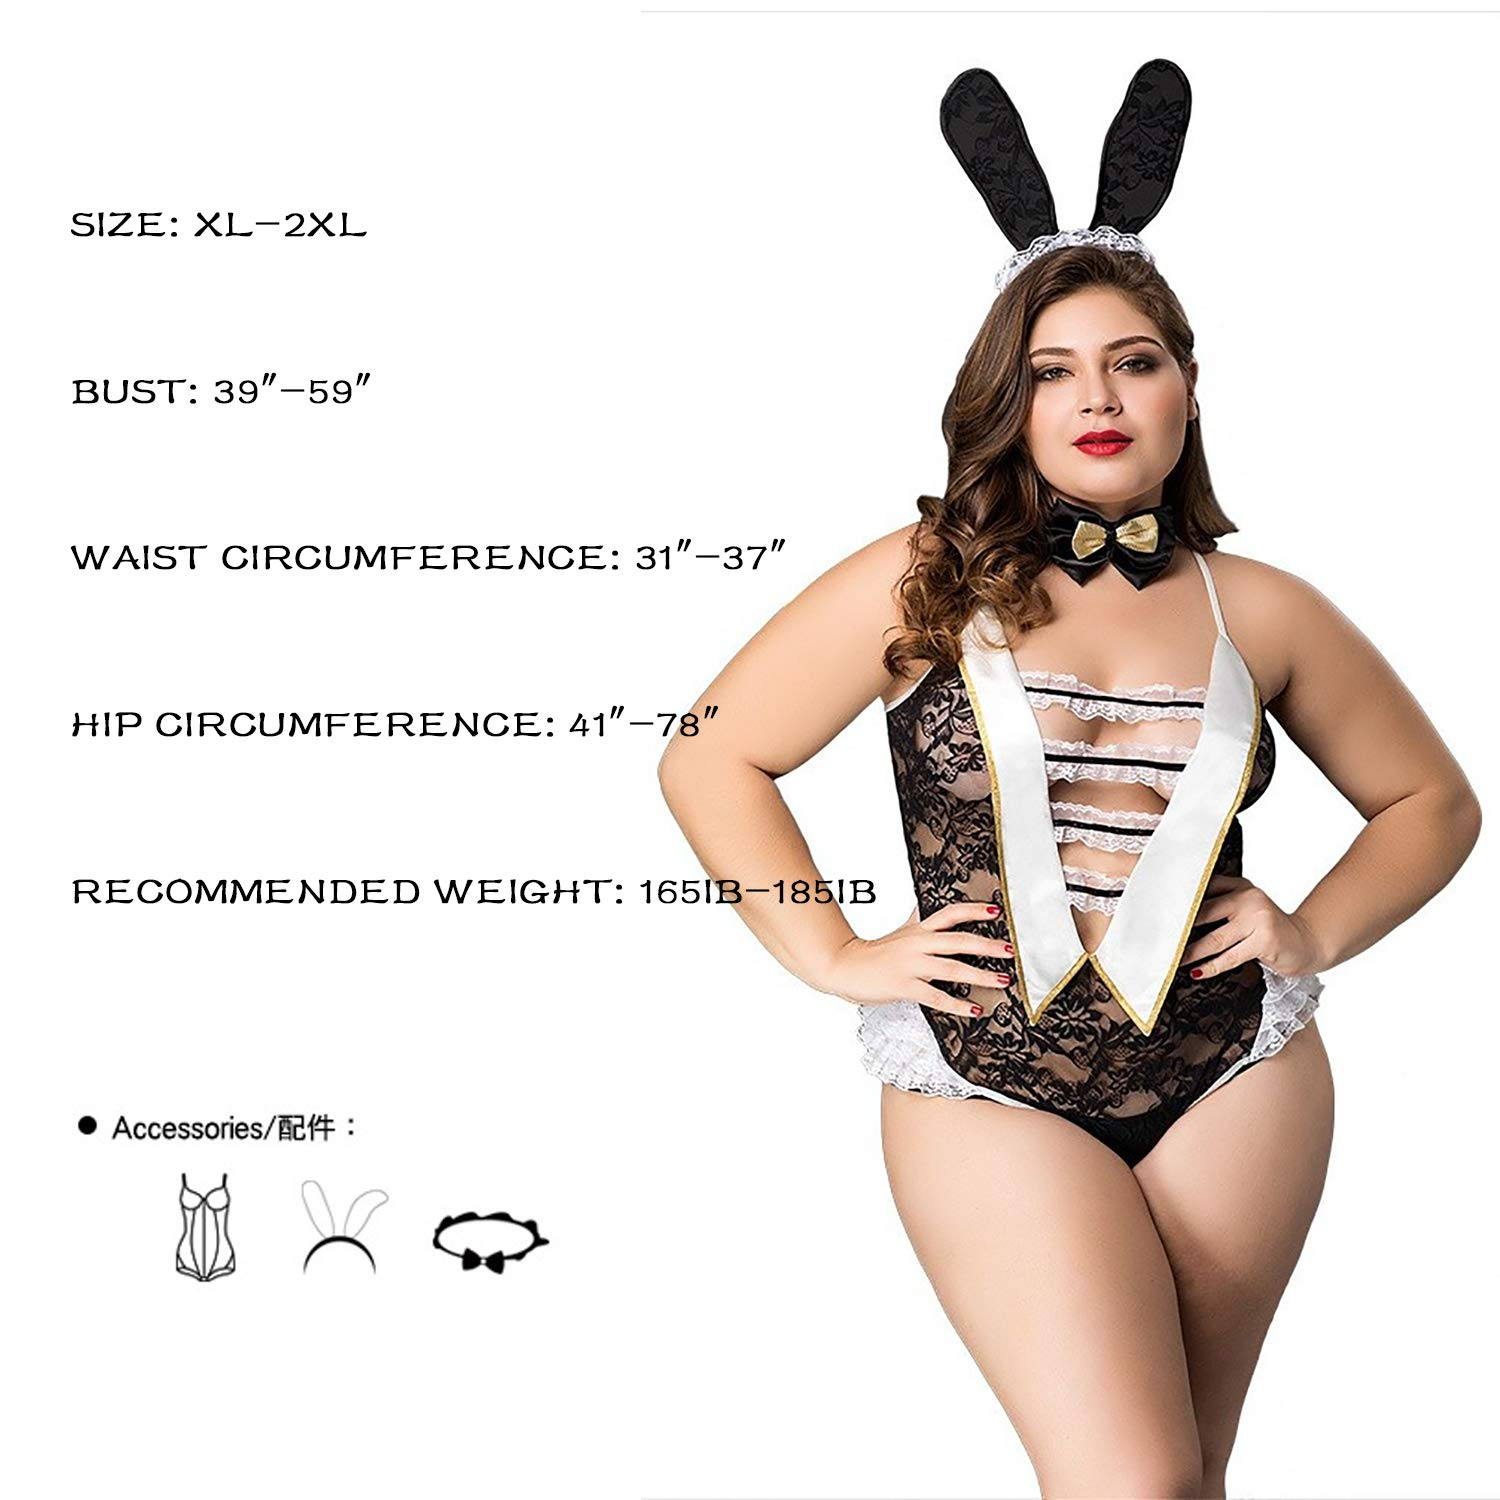 ad5c165e7a Amazon.com  Women s Sexy Halloween Decorations Bunny Playsuit Set Rabbit  Outfit Cosplay  Clothing